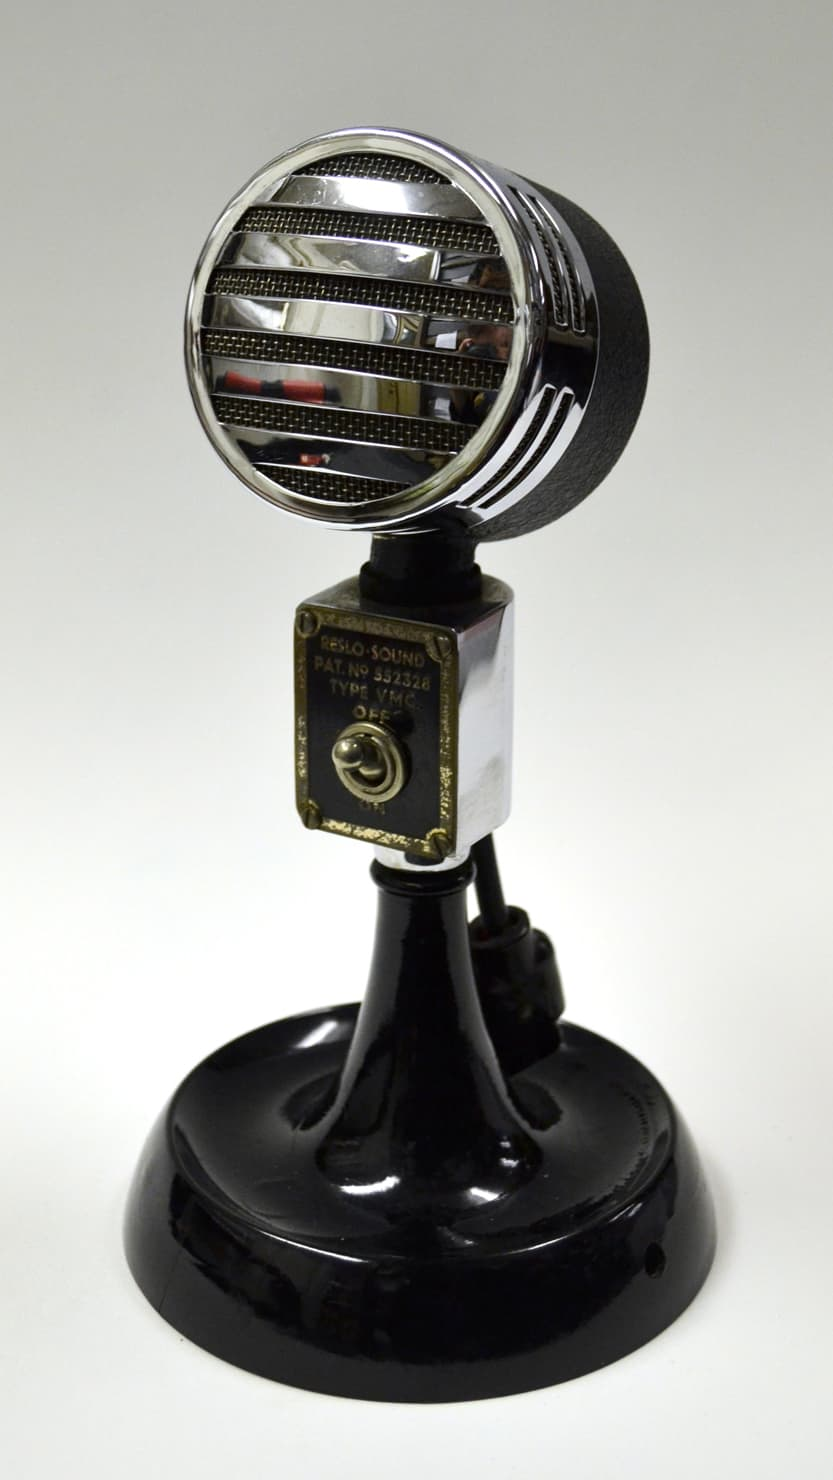 King George VI microphone from The Box, Plymouth's permanent collections. Courtesy of The Box, Plymouth